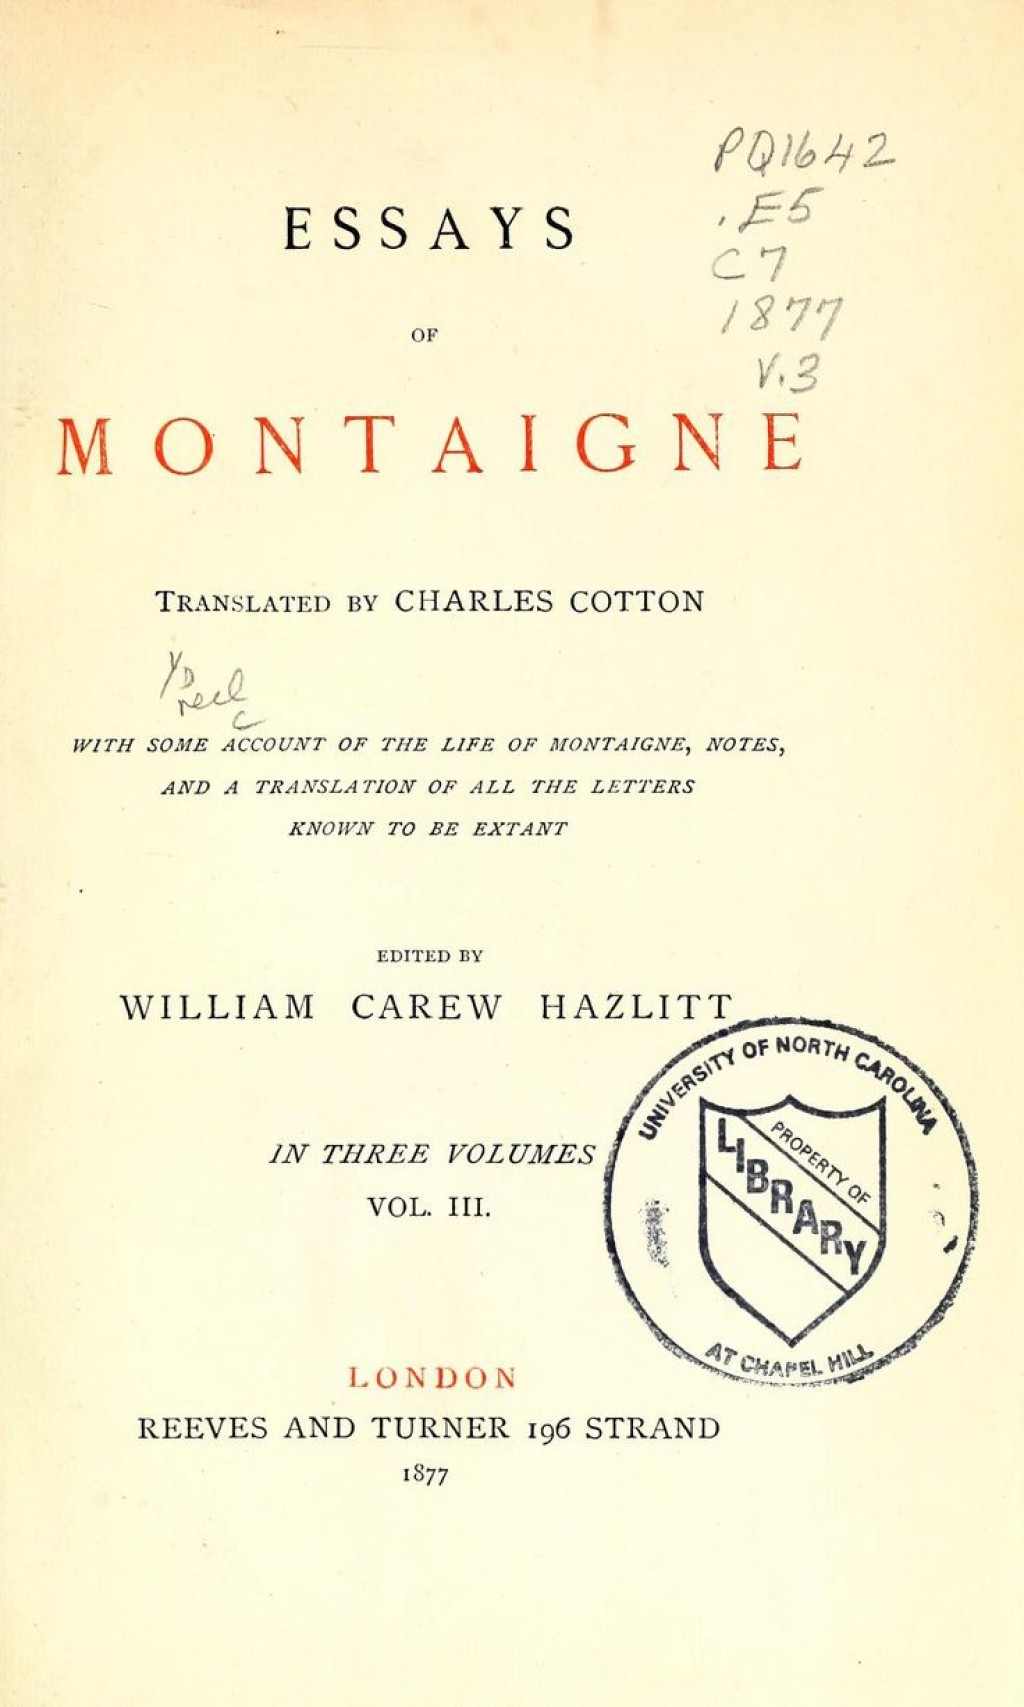 006 Montaigne Essays Pdf Essay Stirring Deutsch English Penguin Large